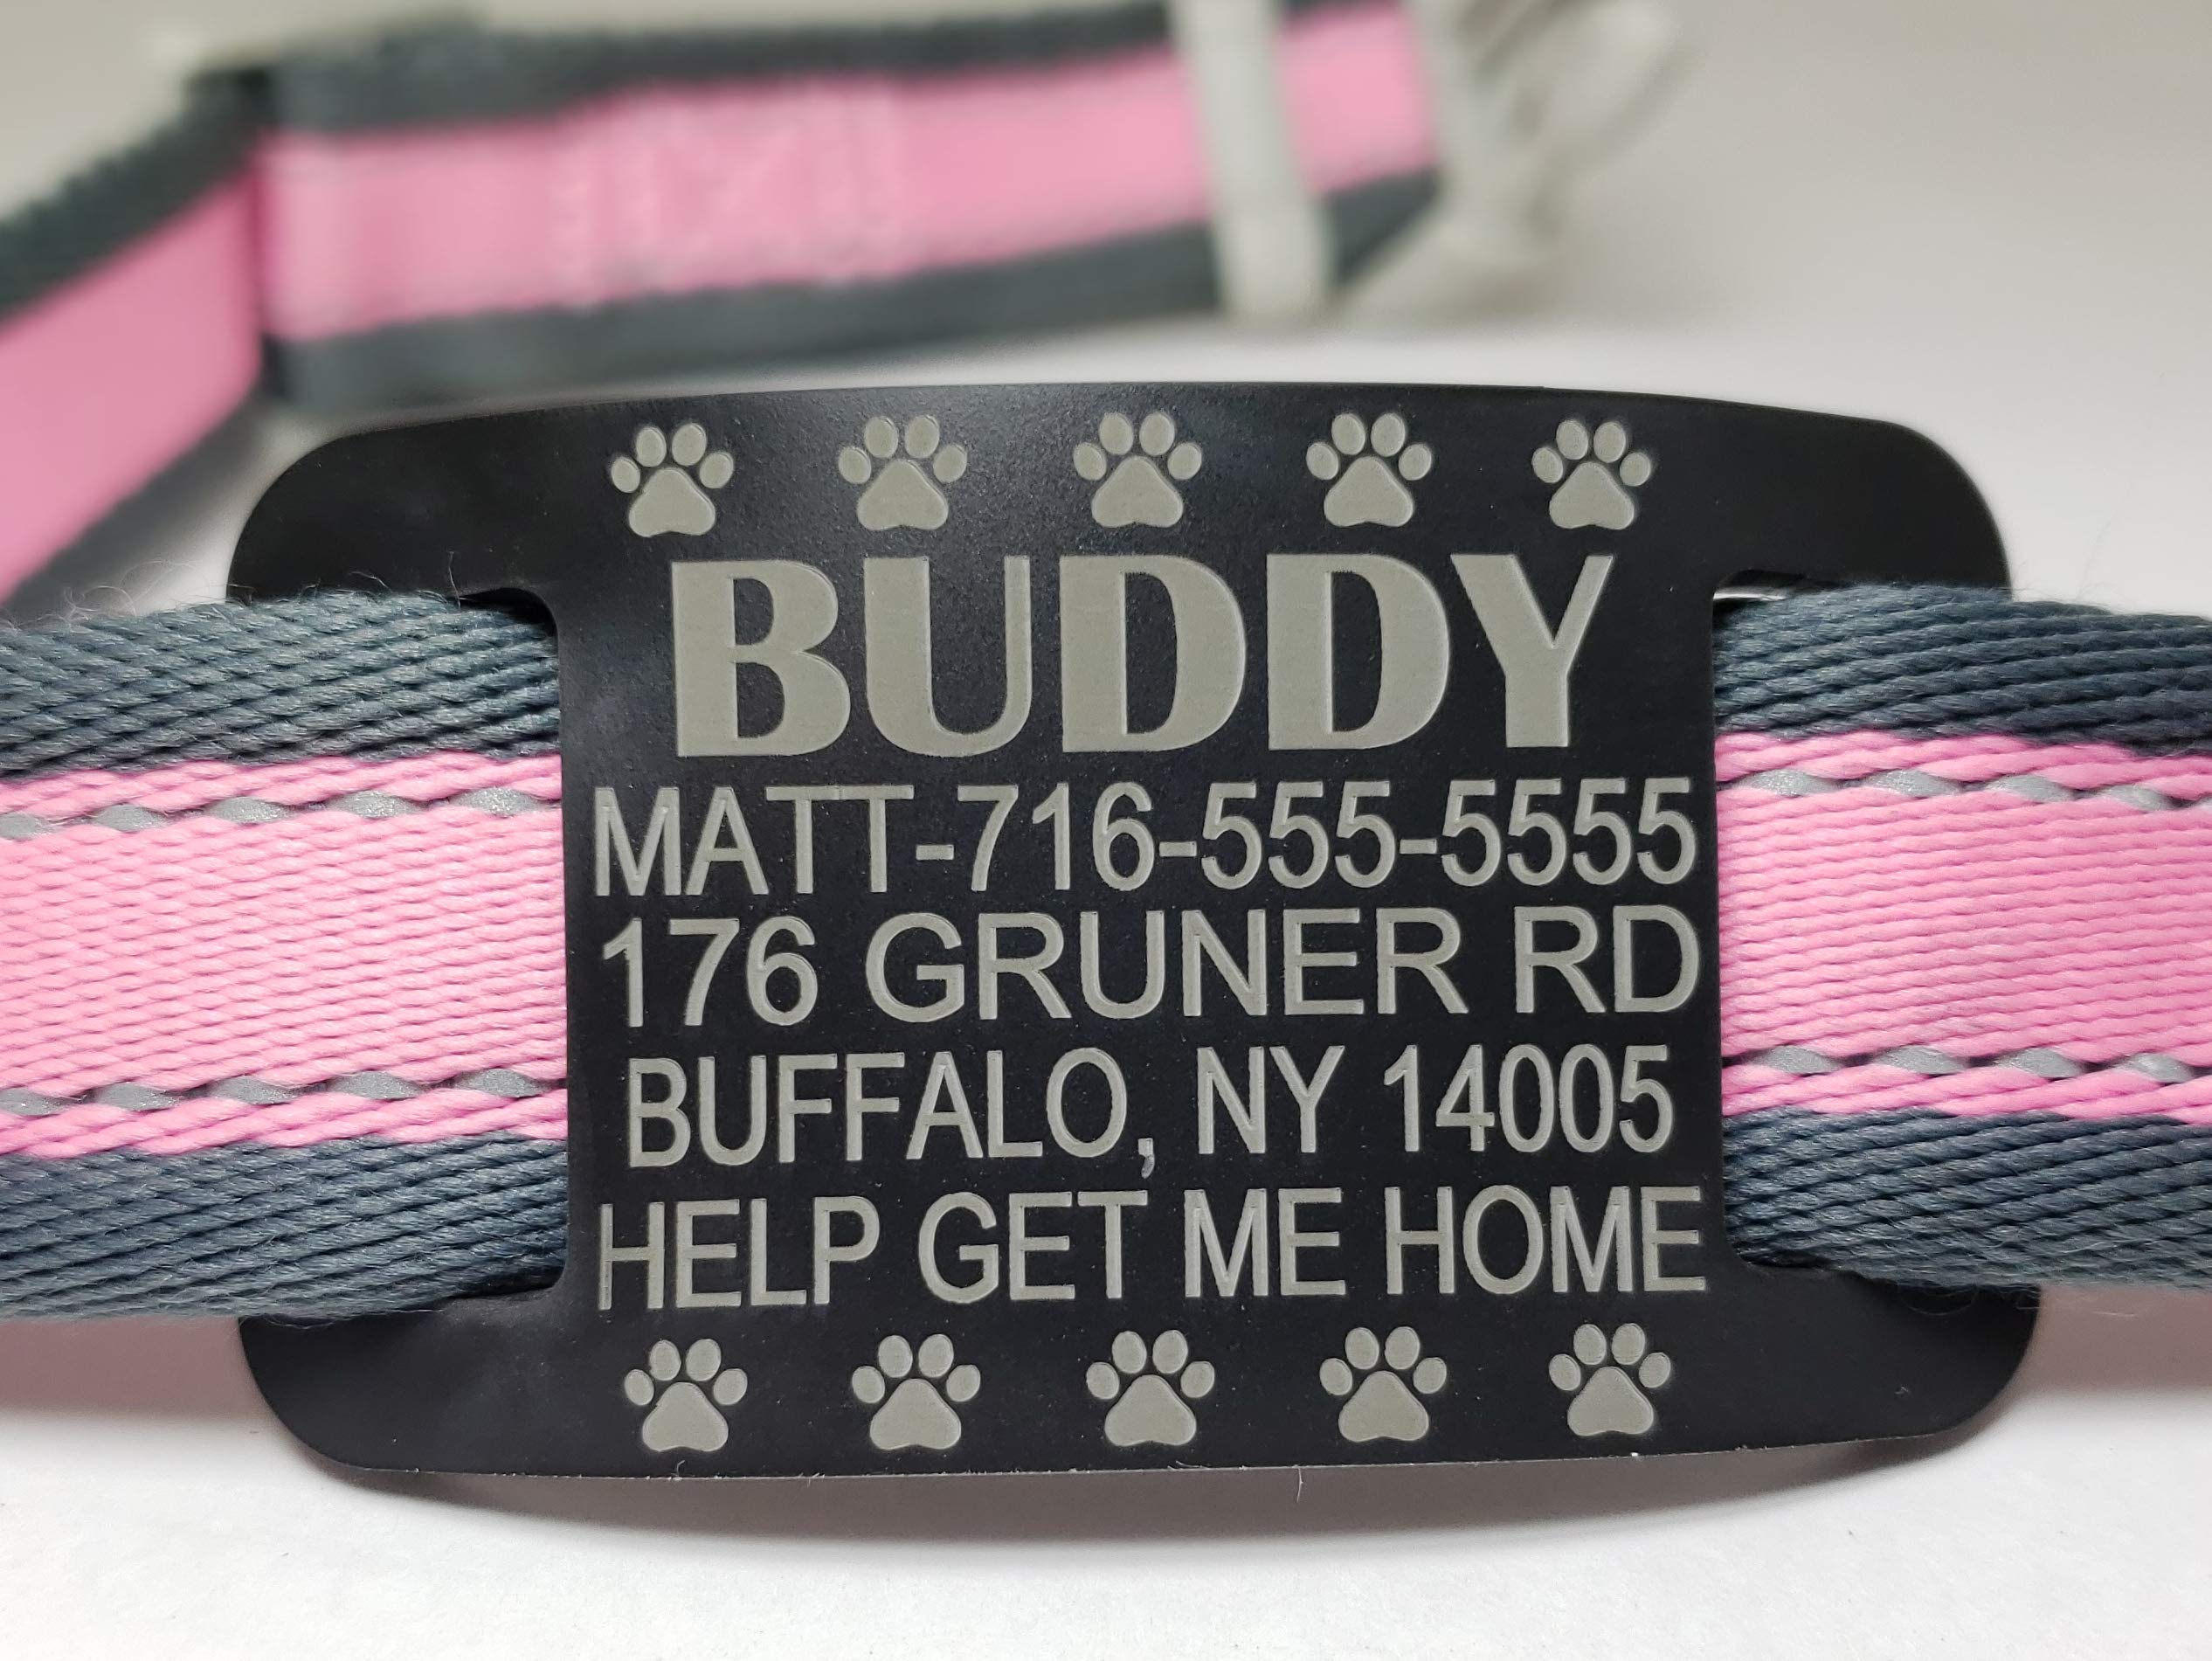 Slide On Collar Tags Quality Pet IDs - Silent, Stretchy Rubber, Never Fades, Safe - Custom Deep Engraved, Waterproof, Personalized Identification for Dogs and Cats - 6 colors, 6 sizes, 5 lines of text